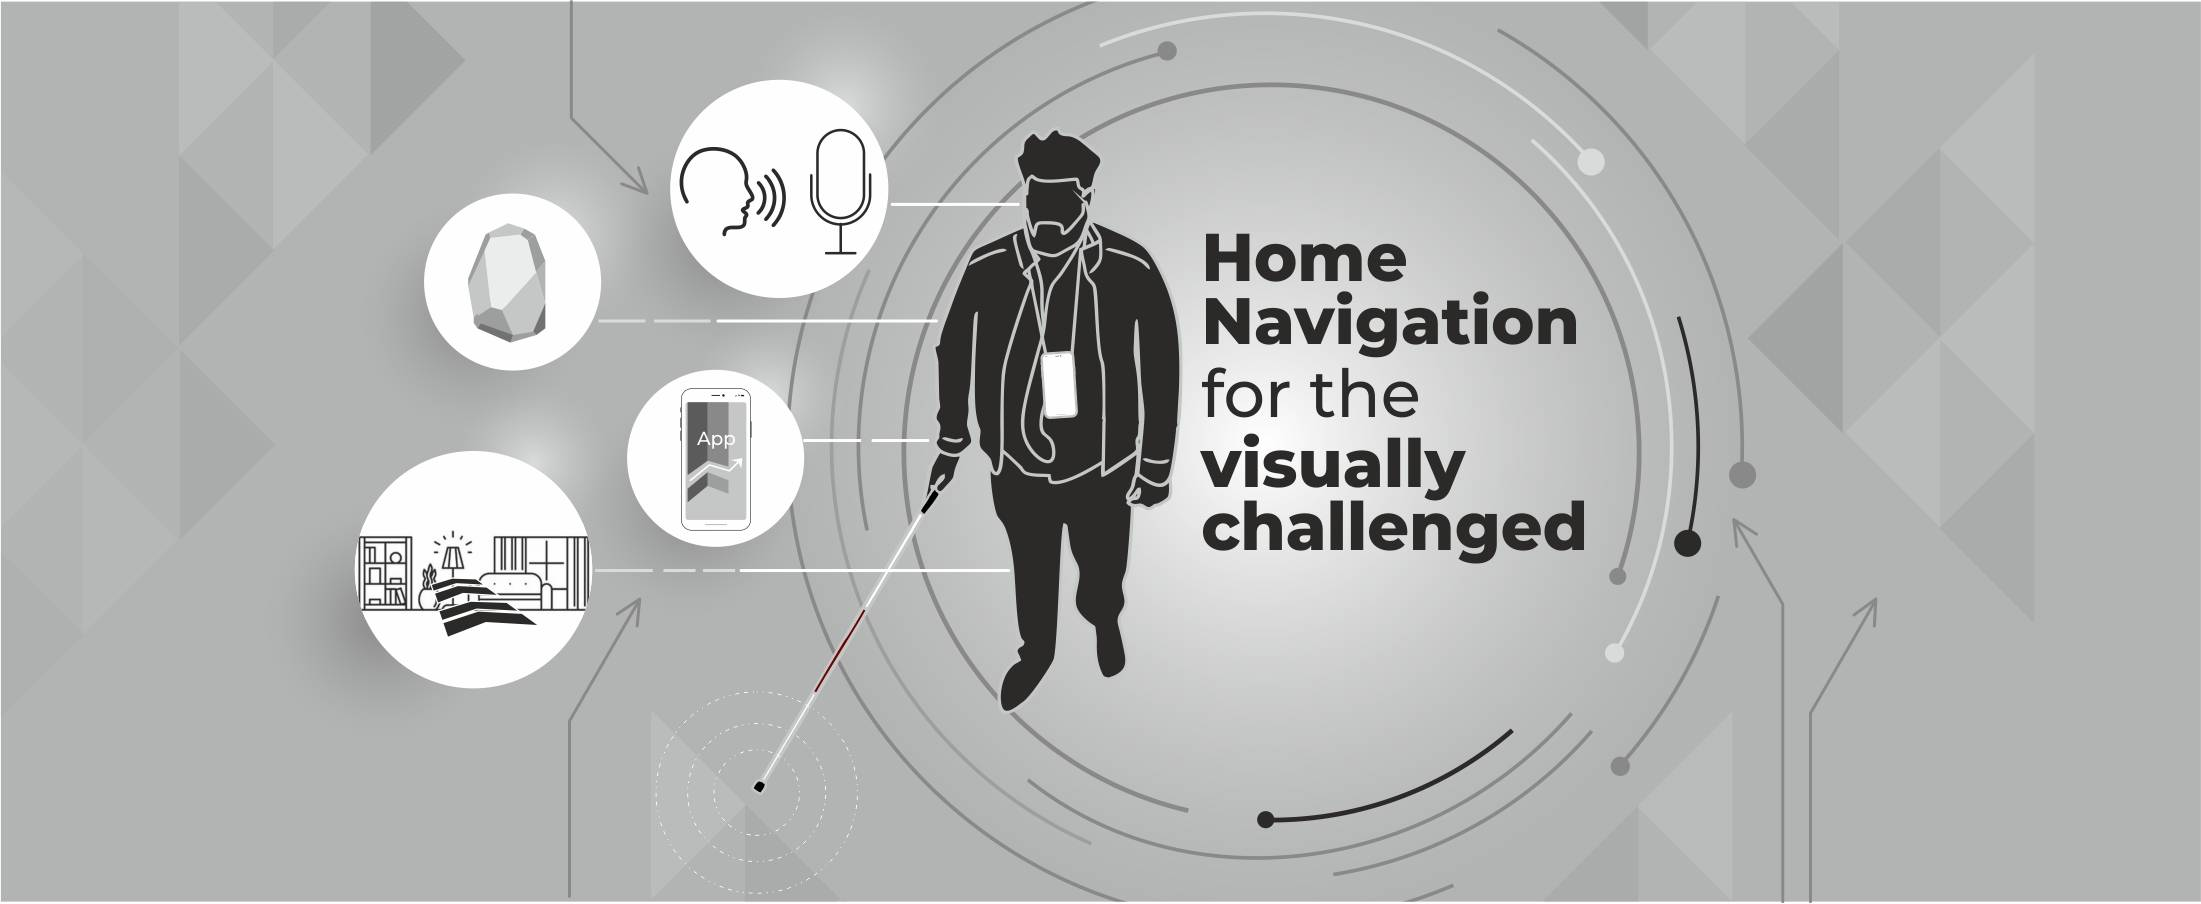 Mobifilia - Home Navigation for the Visually Challenged